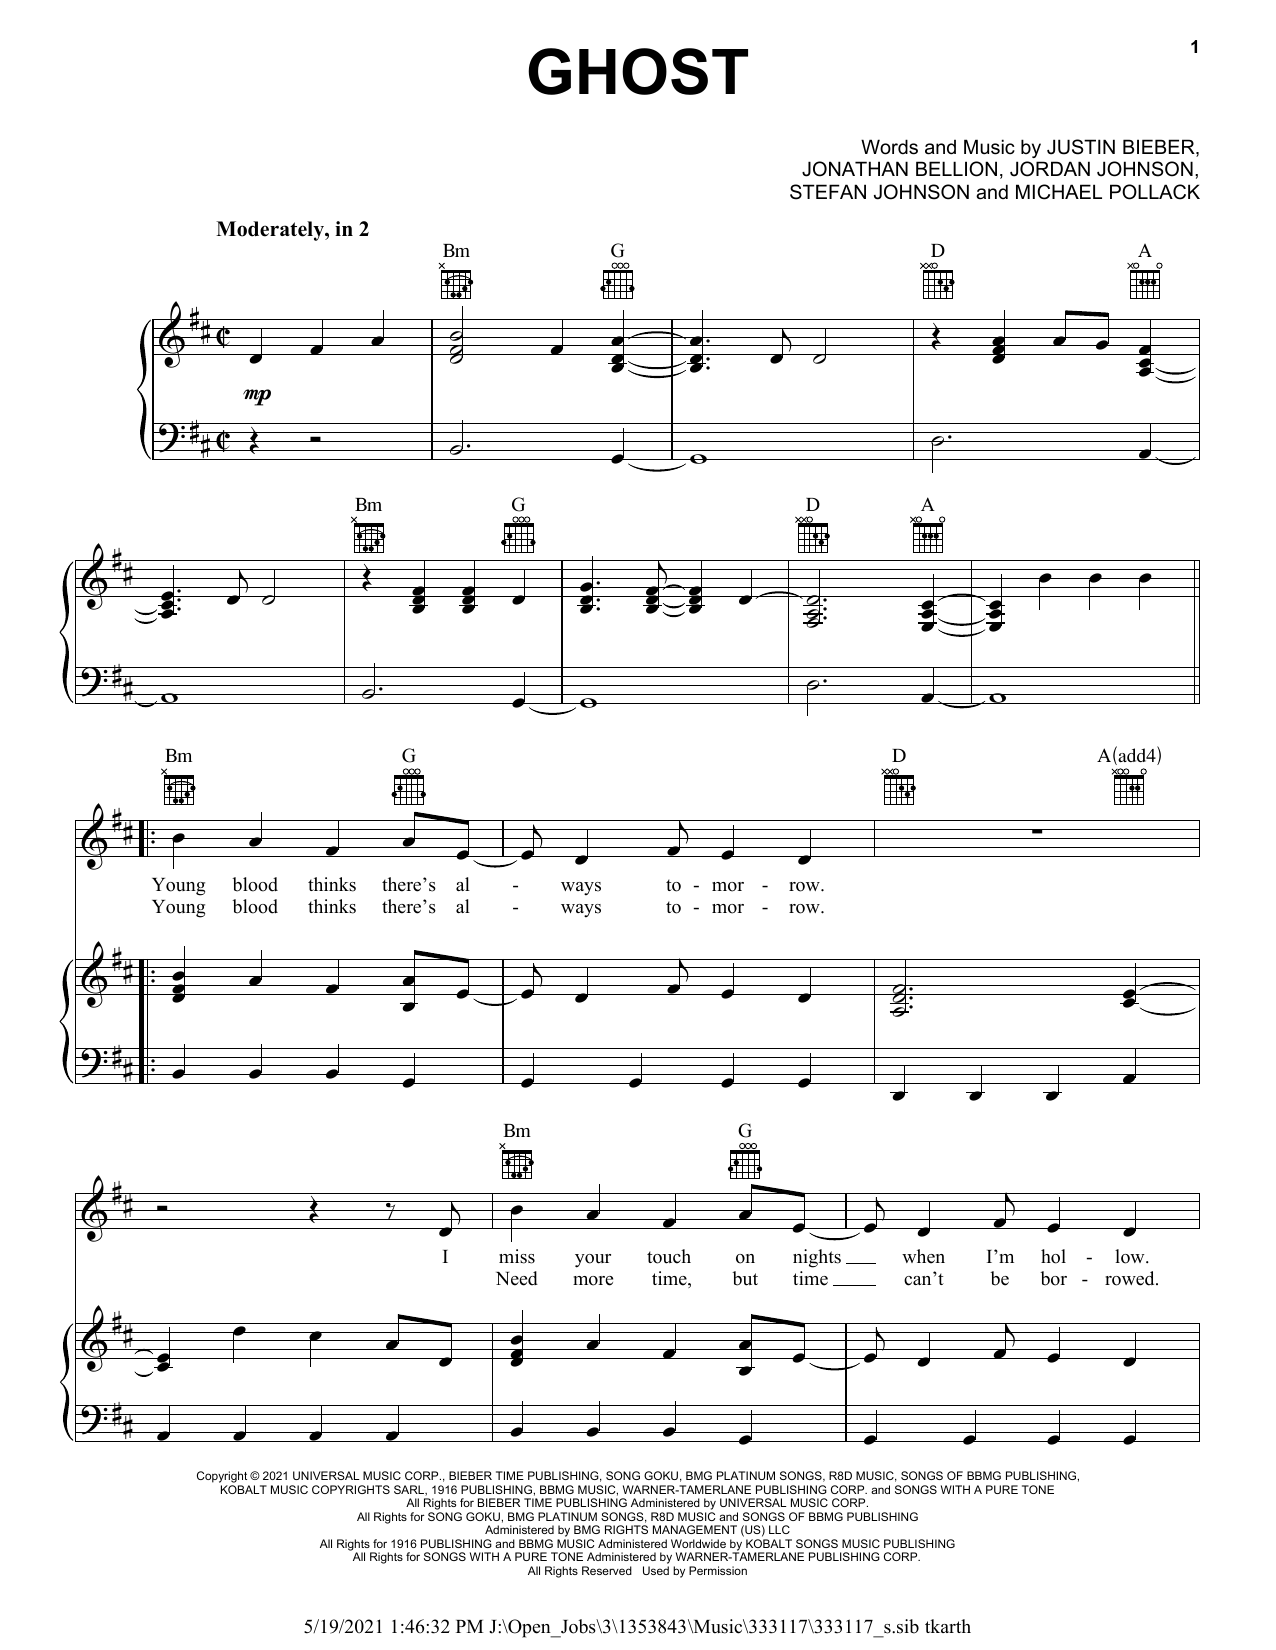 Justin Bieber Ghost sheet music notes and chords. Download Printable PDF.